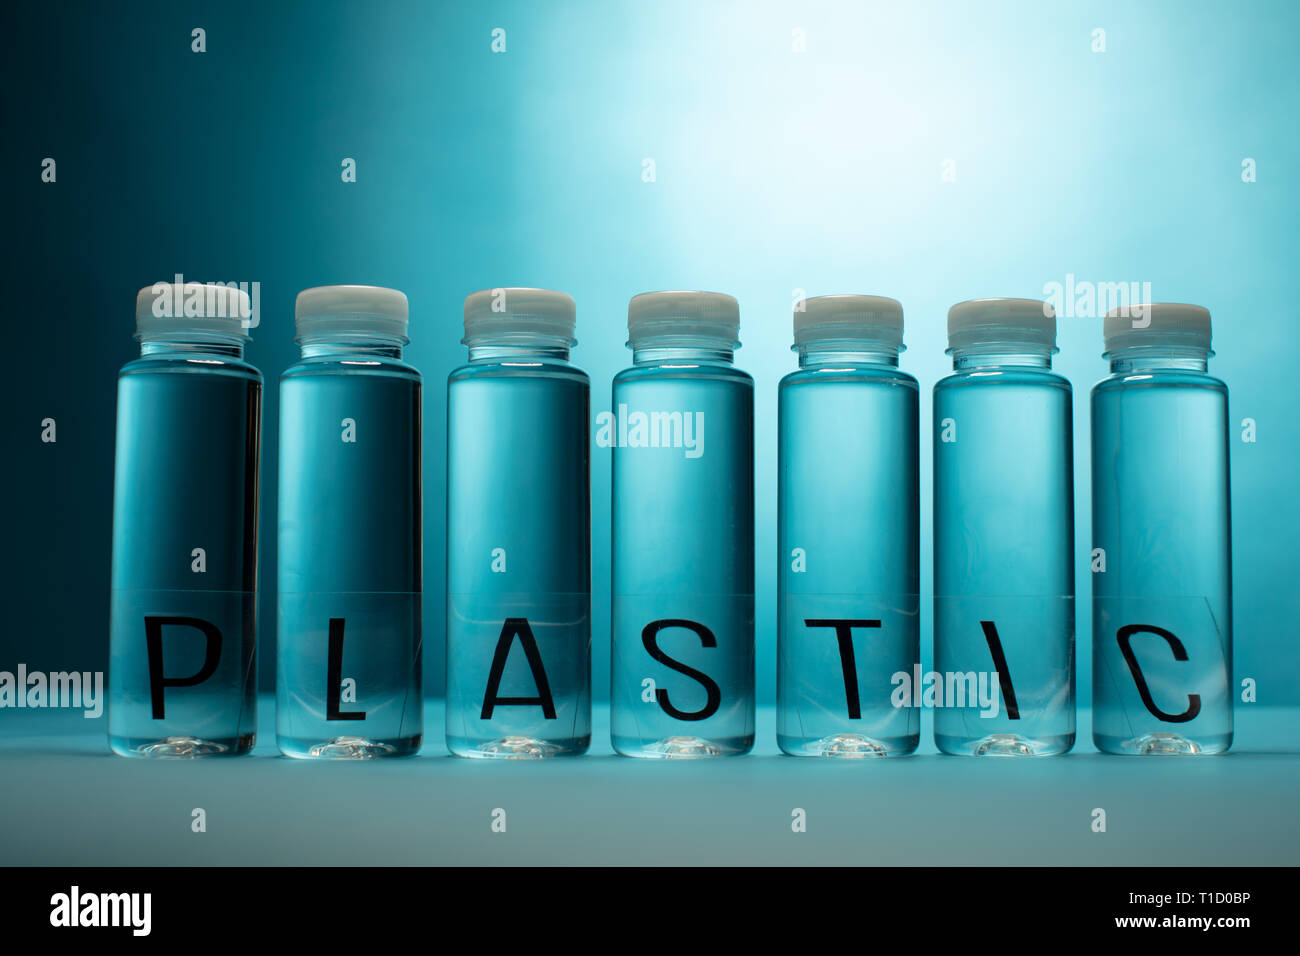 plastic bottles as a symbol for waste - Stock Image